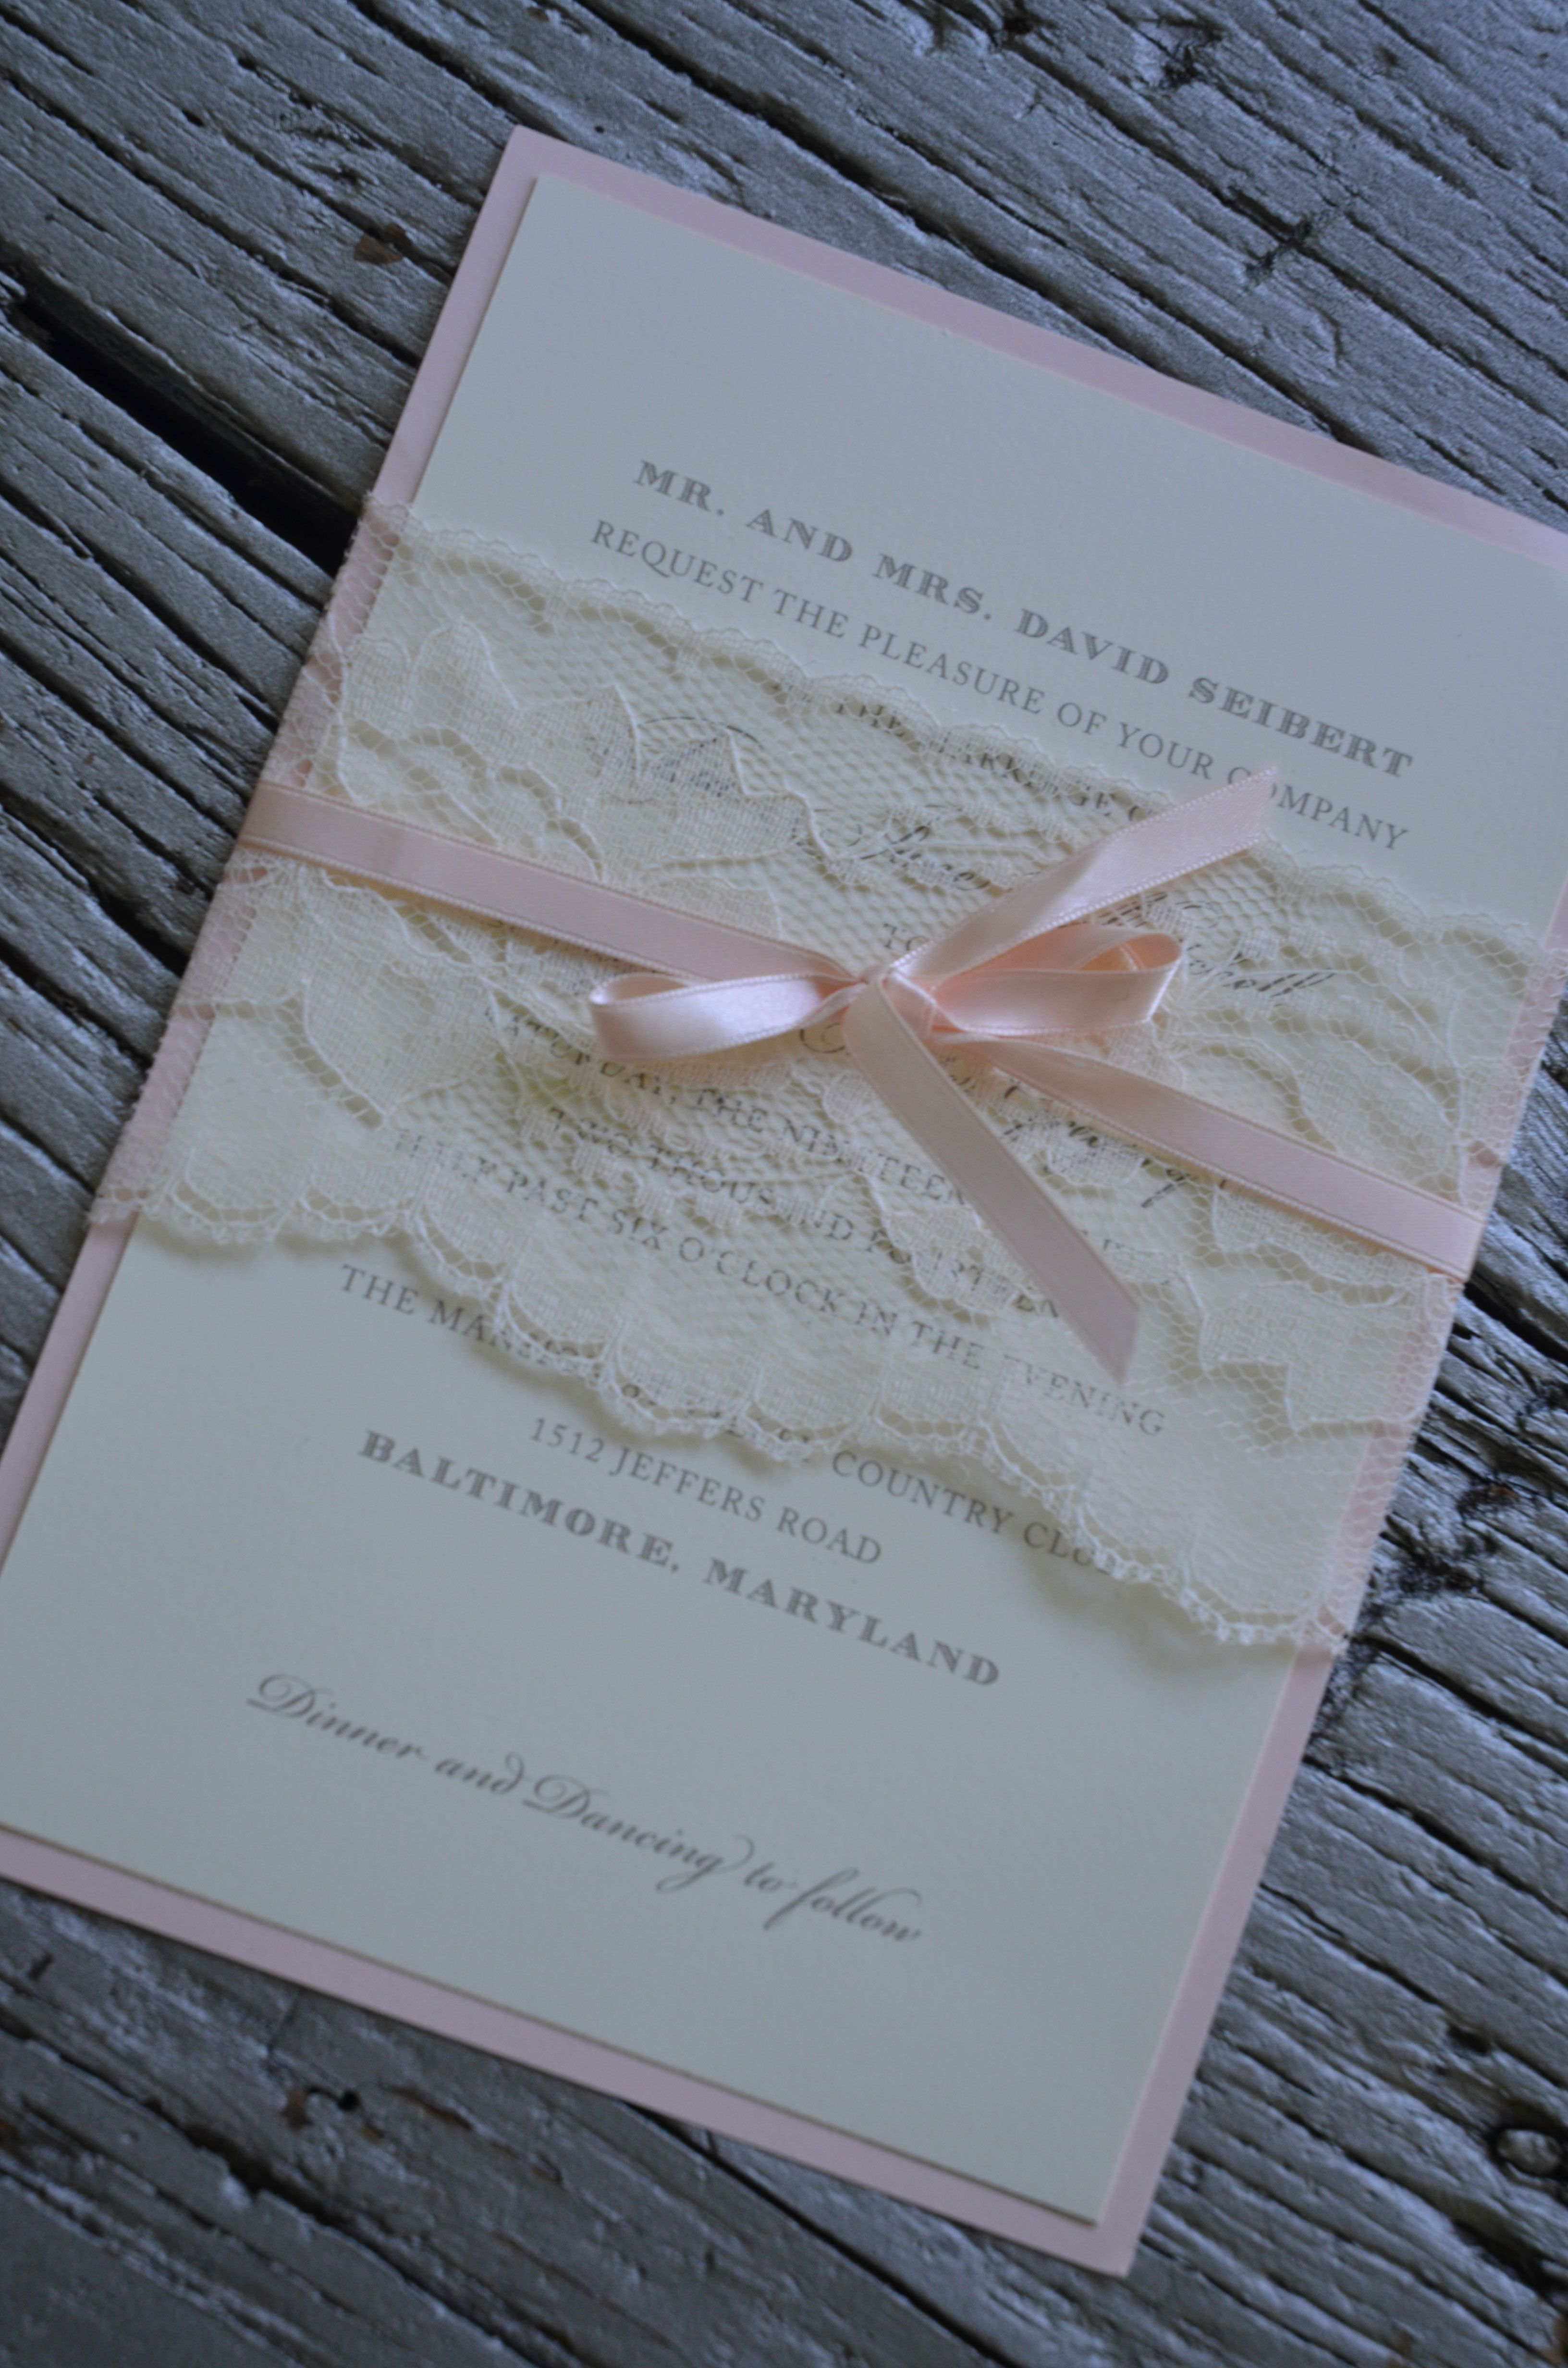 Lace belly band around wedding Invitation with satin ribbon – Wedding Invites Lace